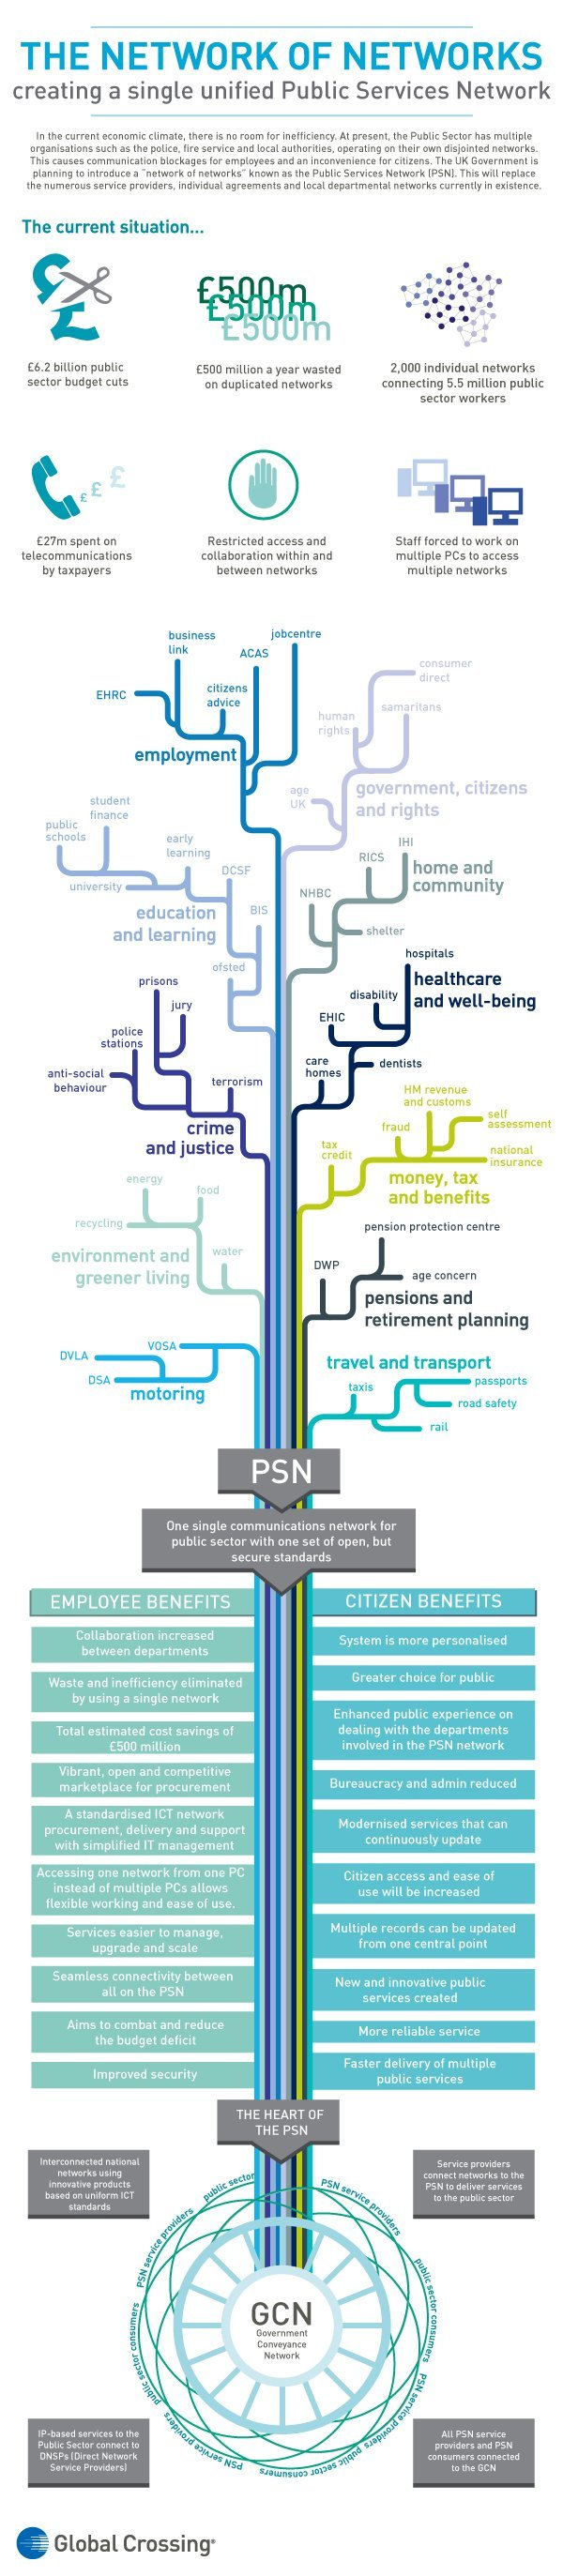 UK government Public Services Network infographic